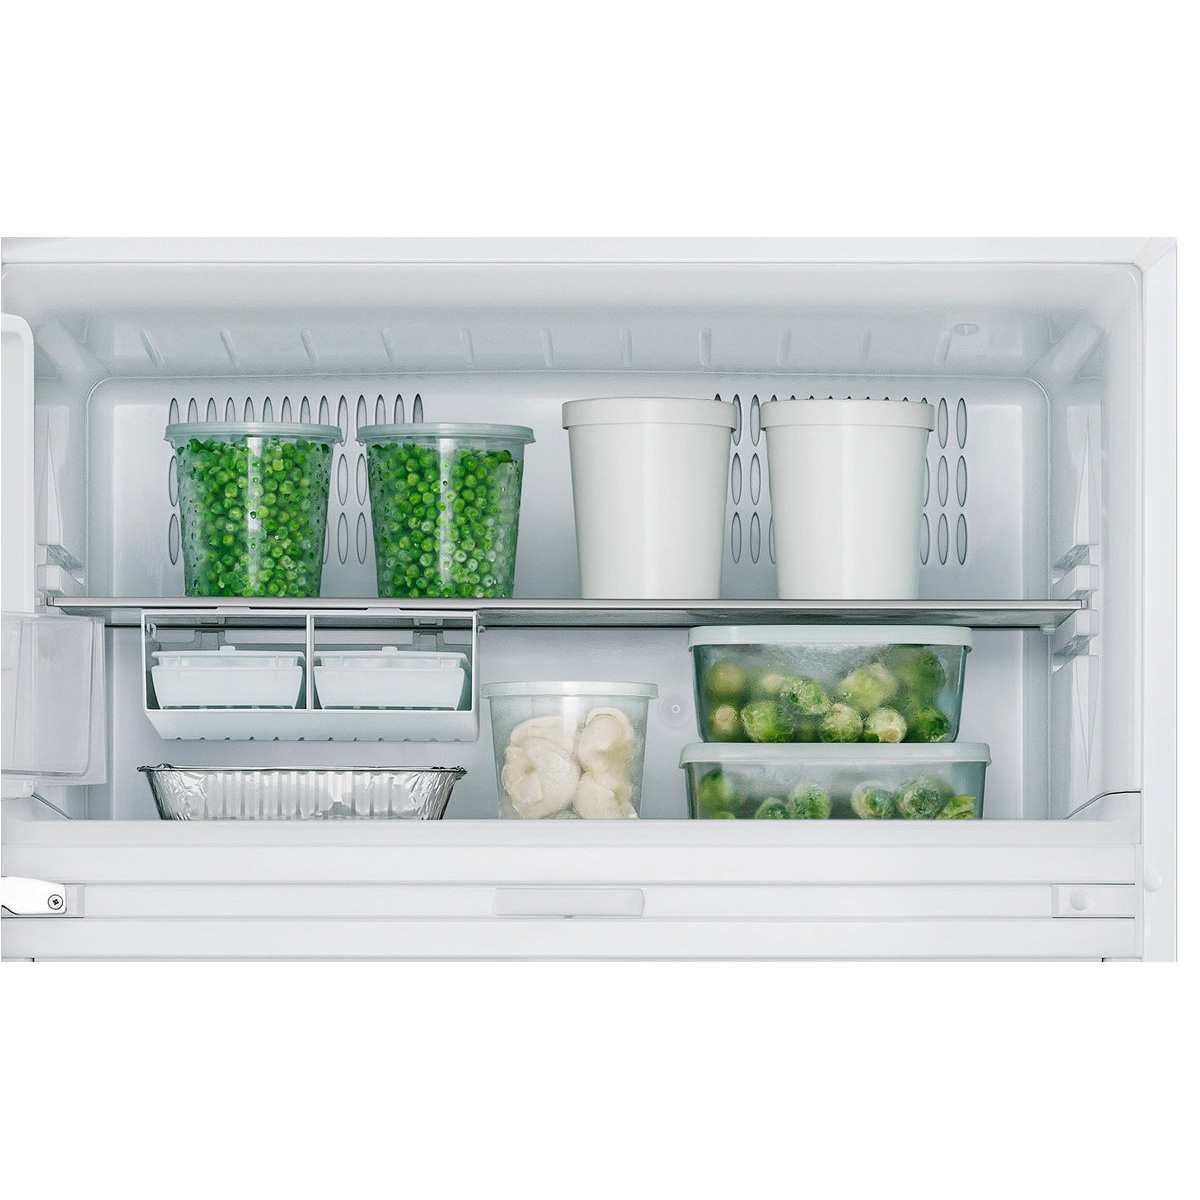 Fisher & Paykel RF521TLPW6 517L Top Mount Fridge 41113